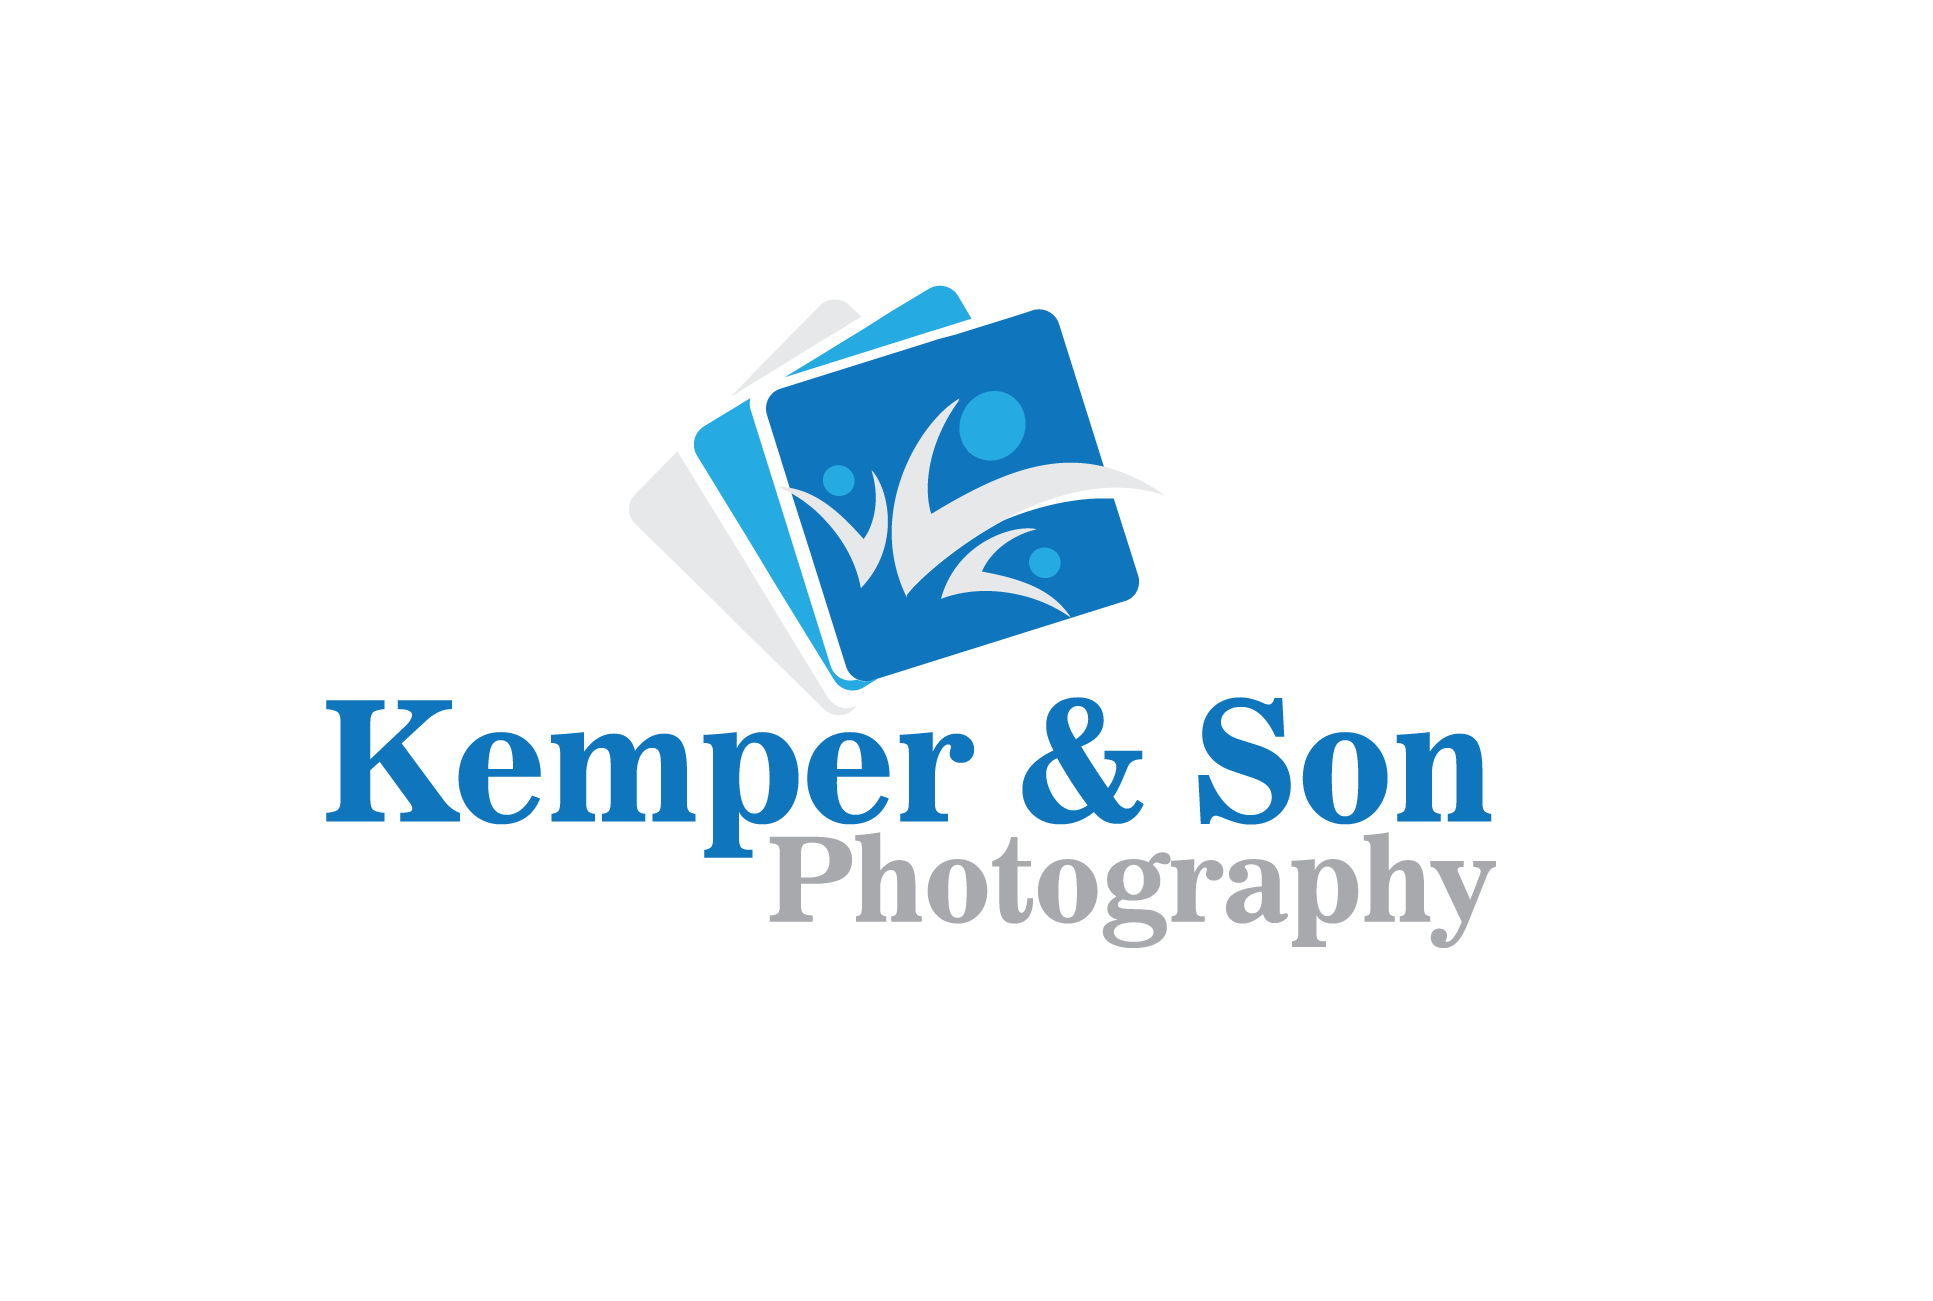 Kemper & Son Photography